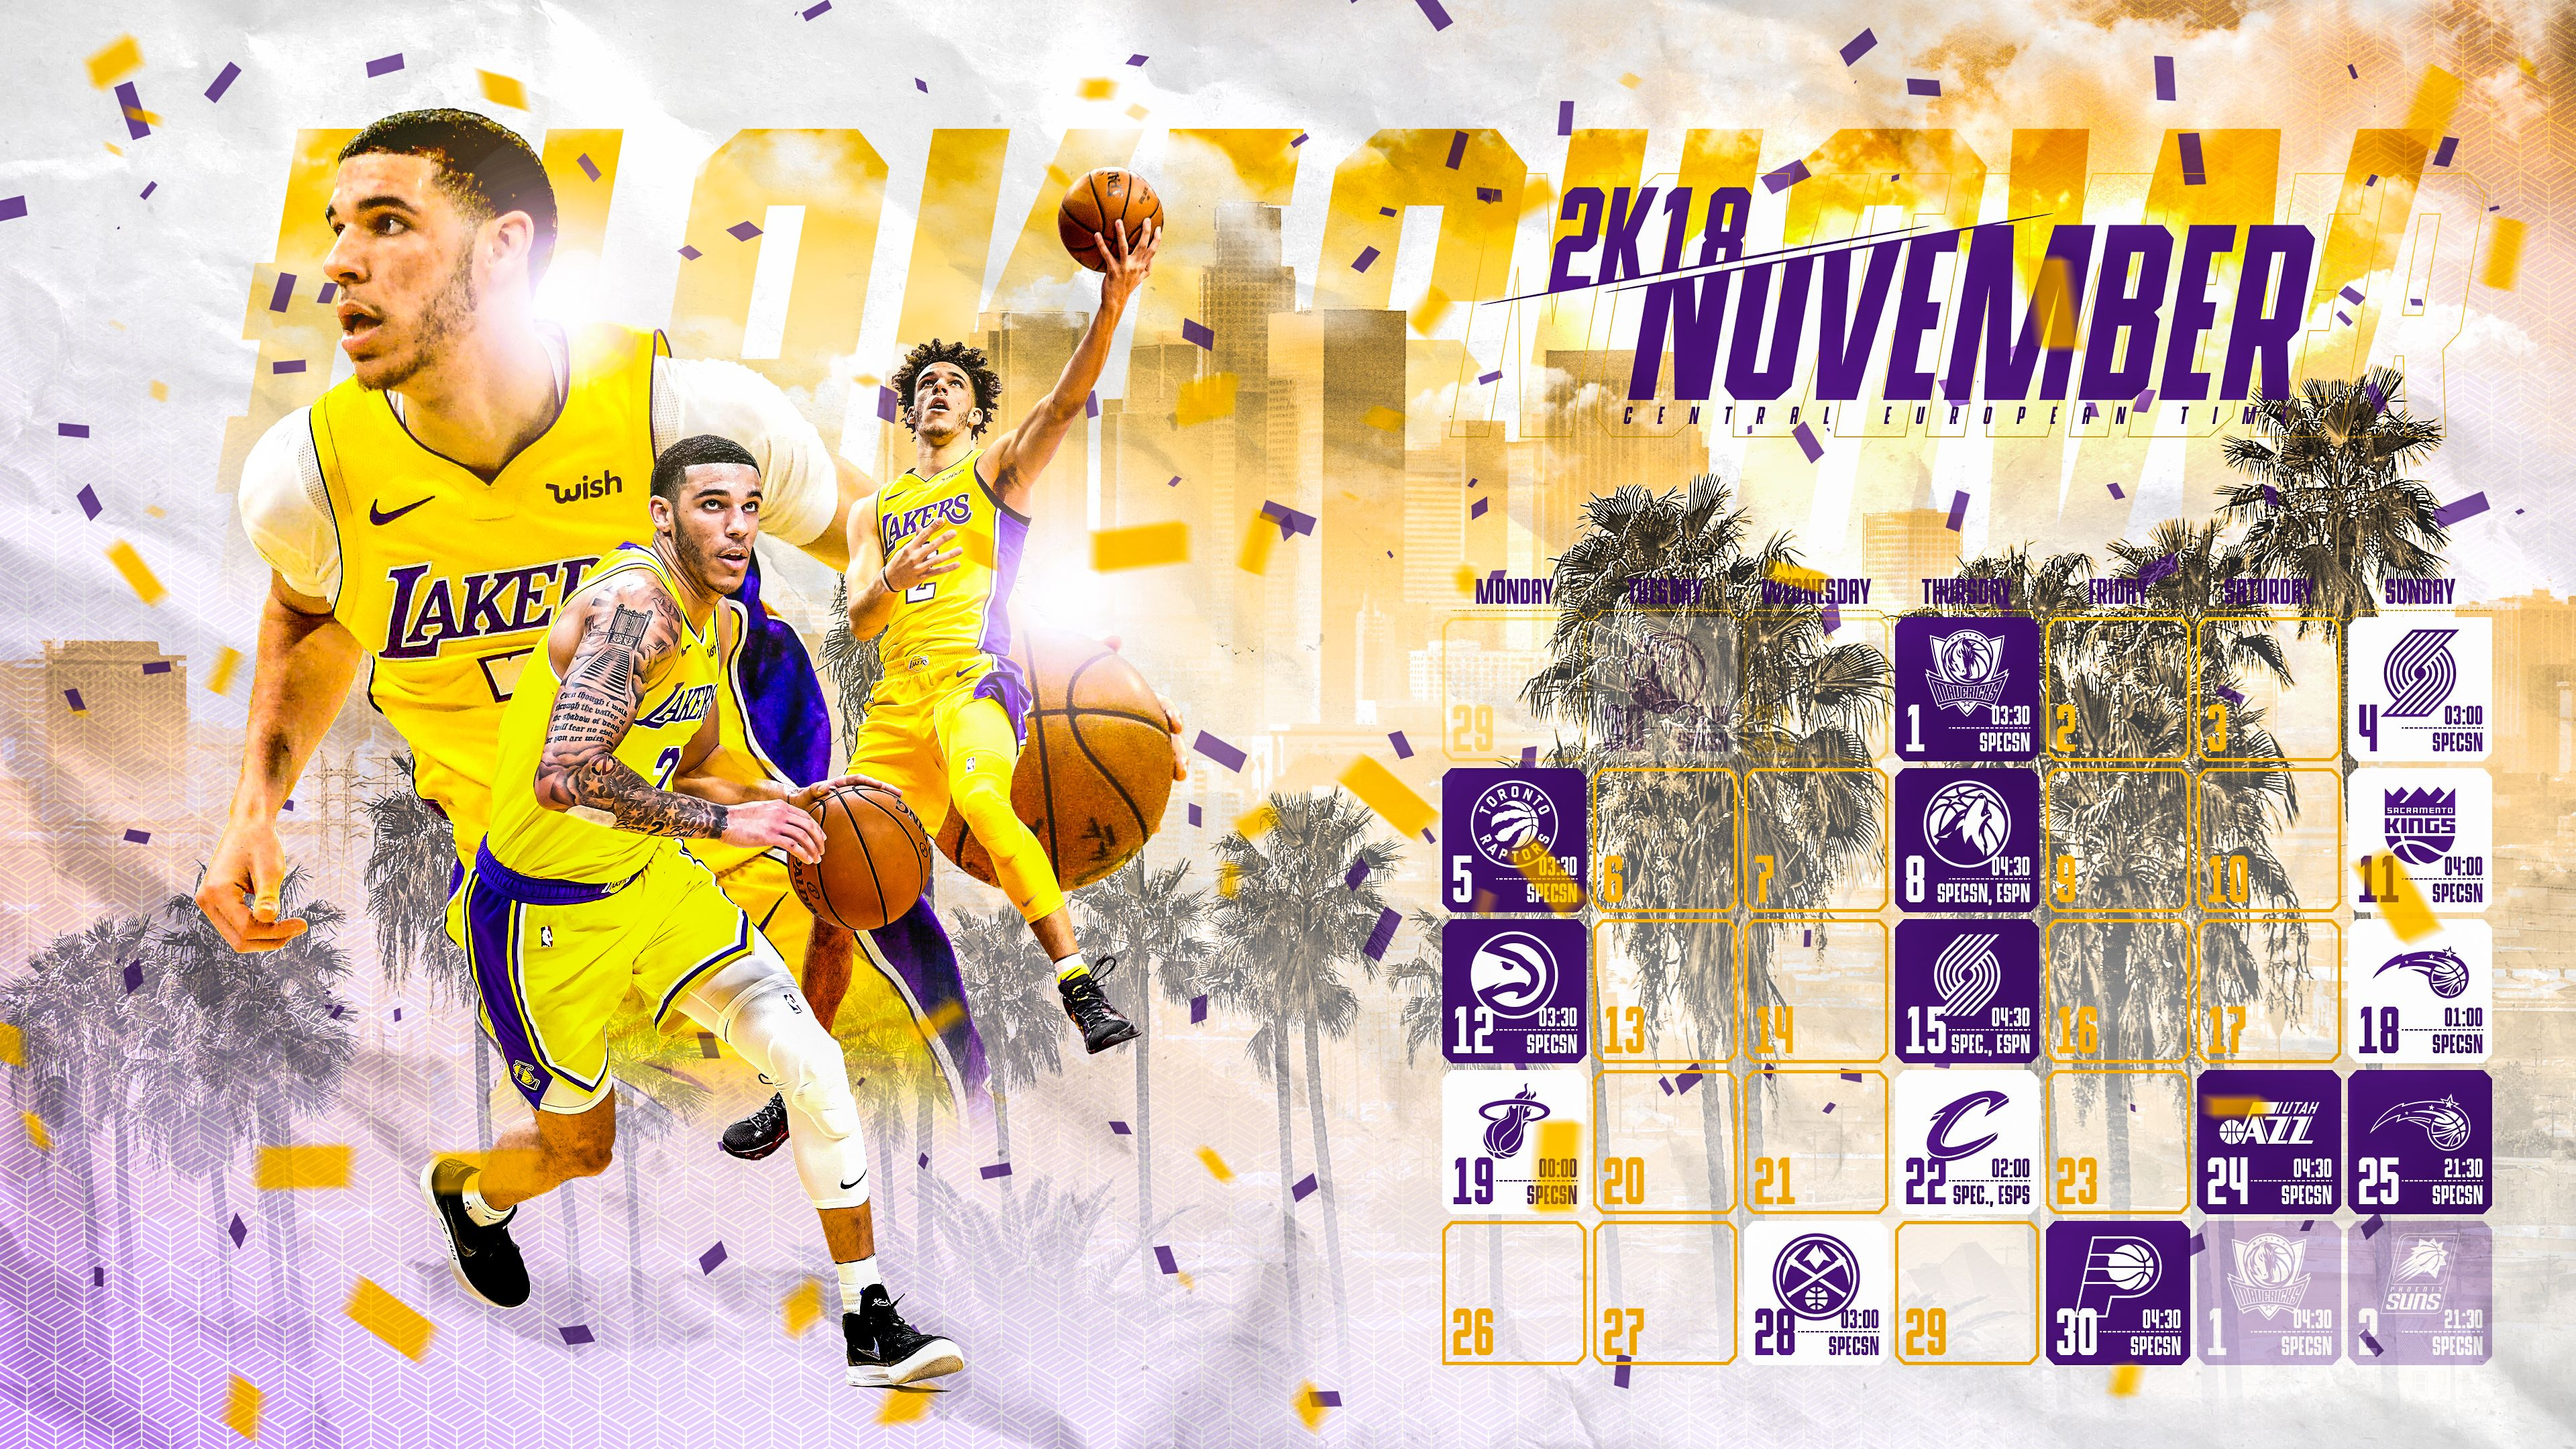 Schedule Wallpaper For The Los Angeles Lakers Regular Season 2018 19 Game Times Are Cet Made By Gergo Tobler Aka Tger S Los Angeles Lakers Lakers Game Time